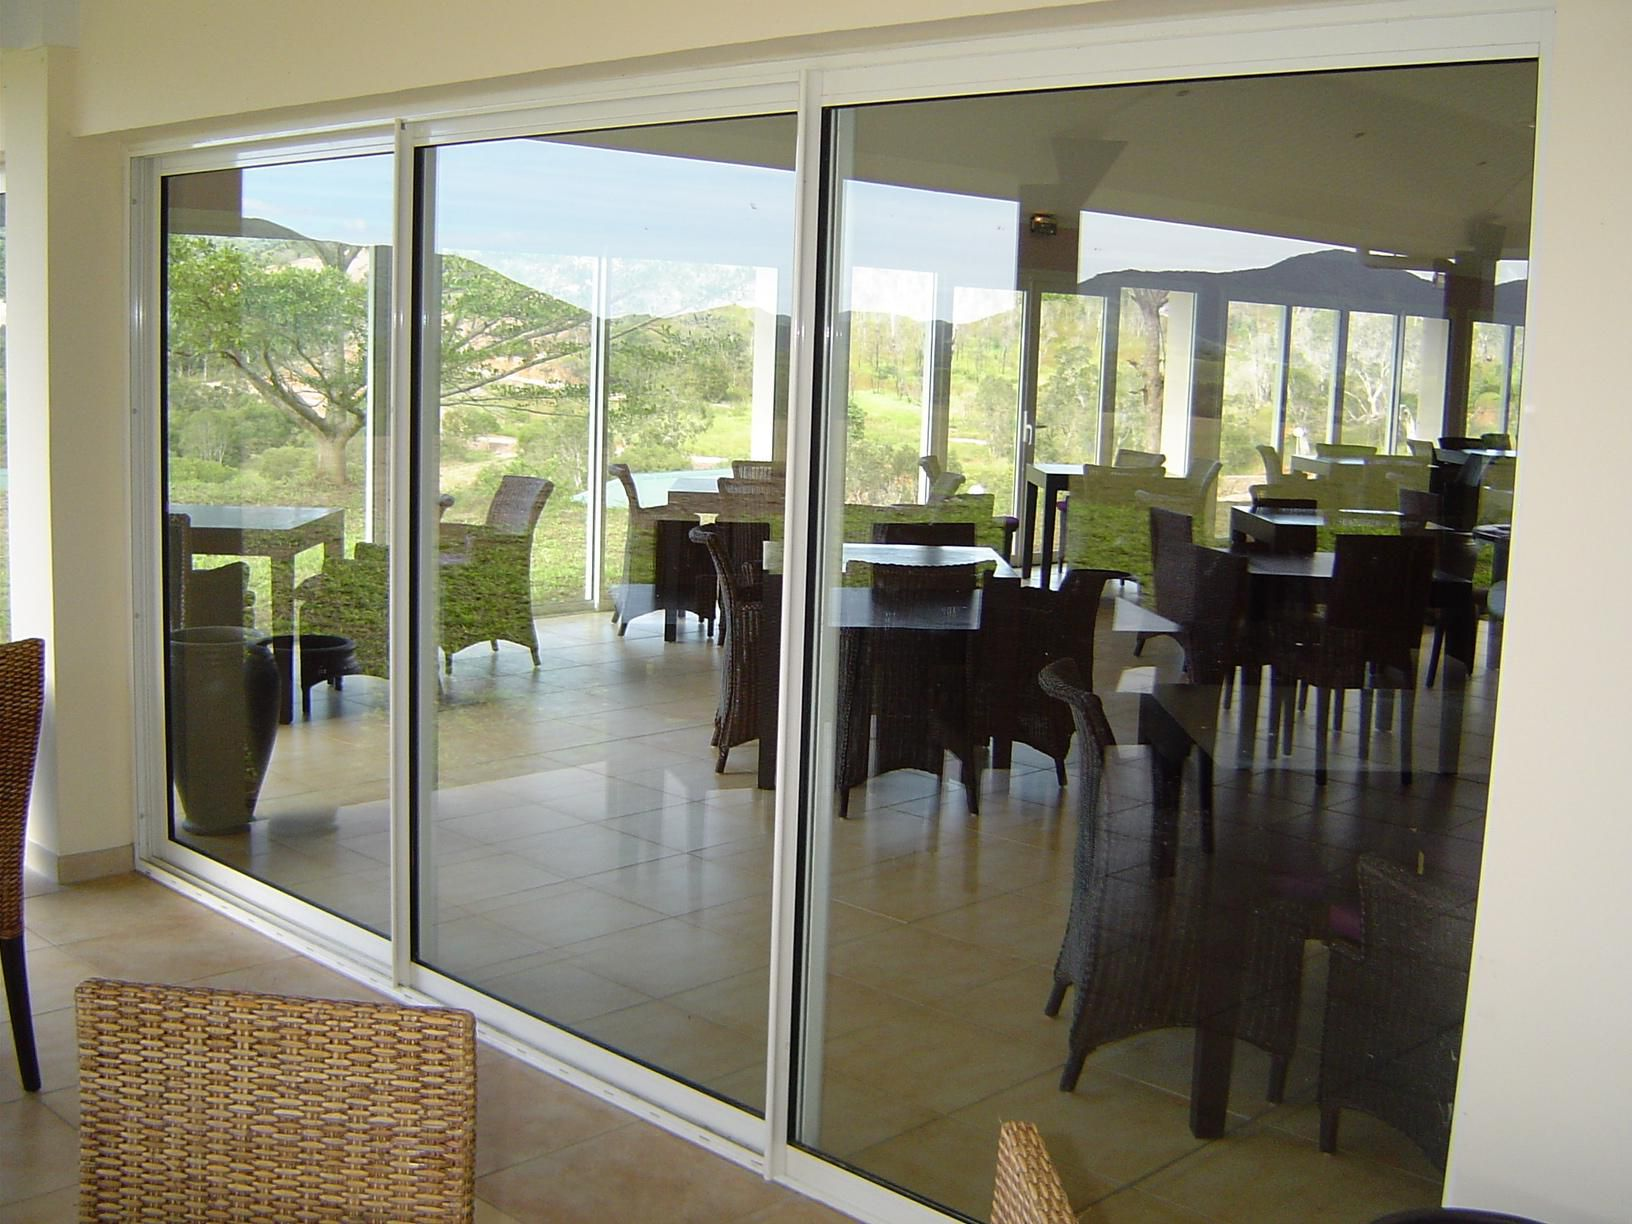 White Sliding Aluminum Door With A Large Glass For The Dining Room In Hotel